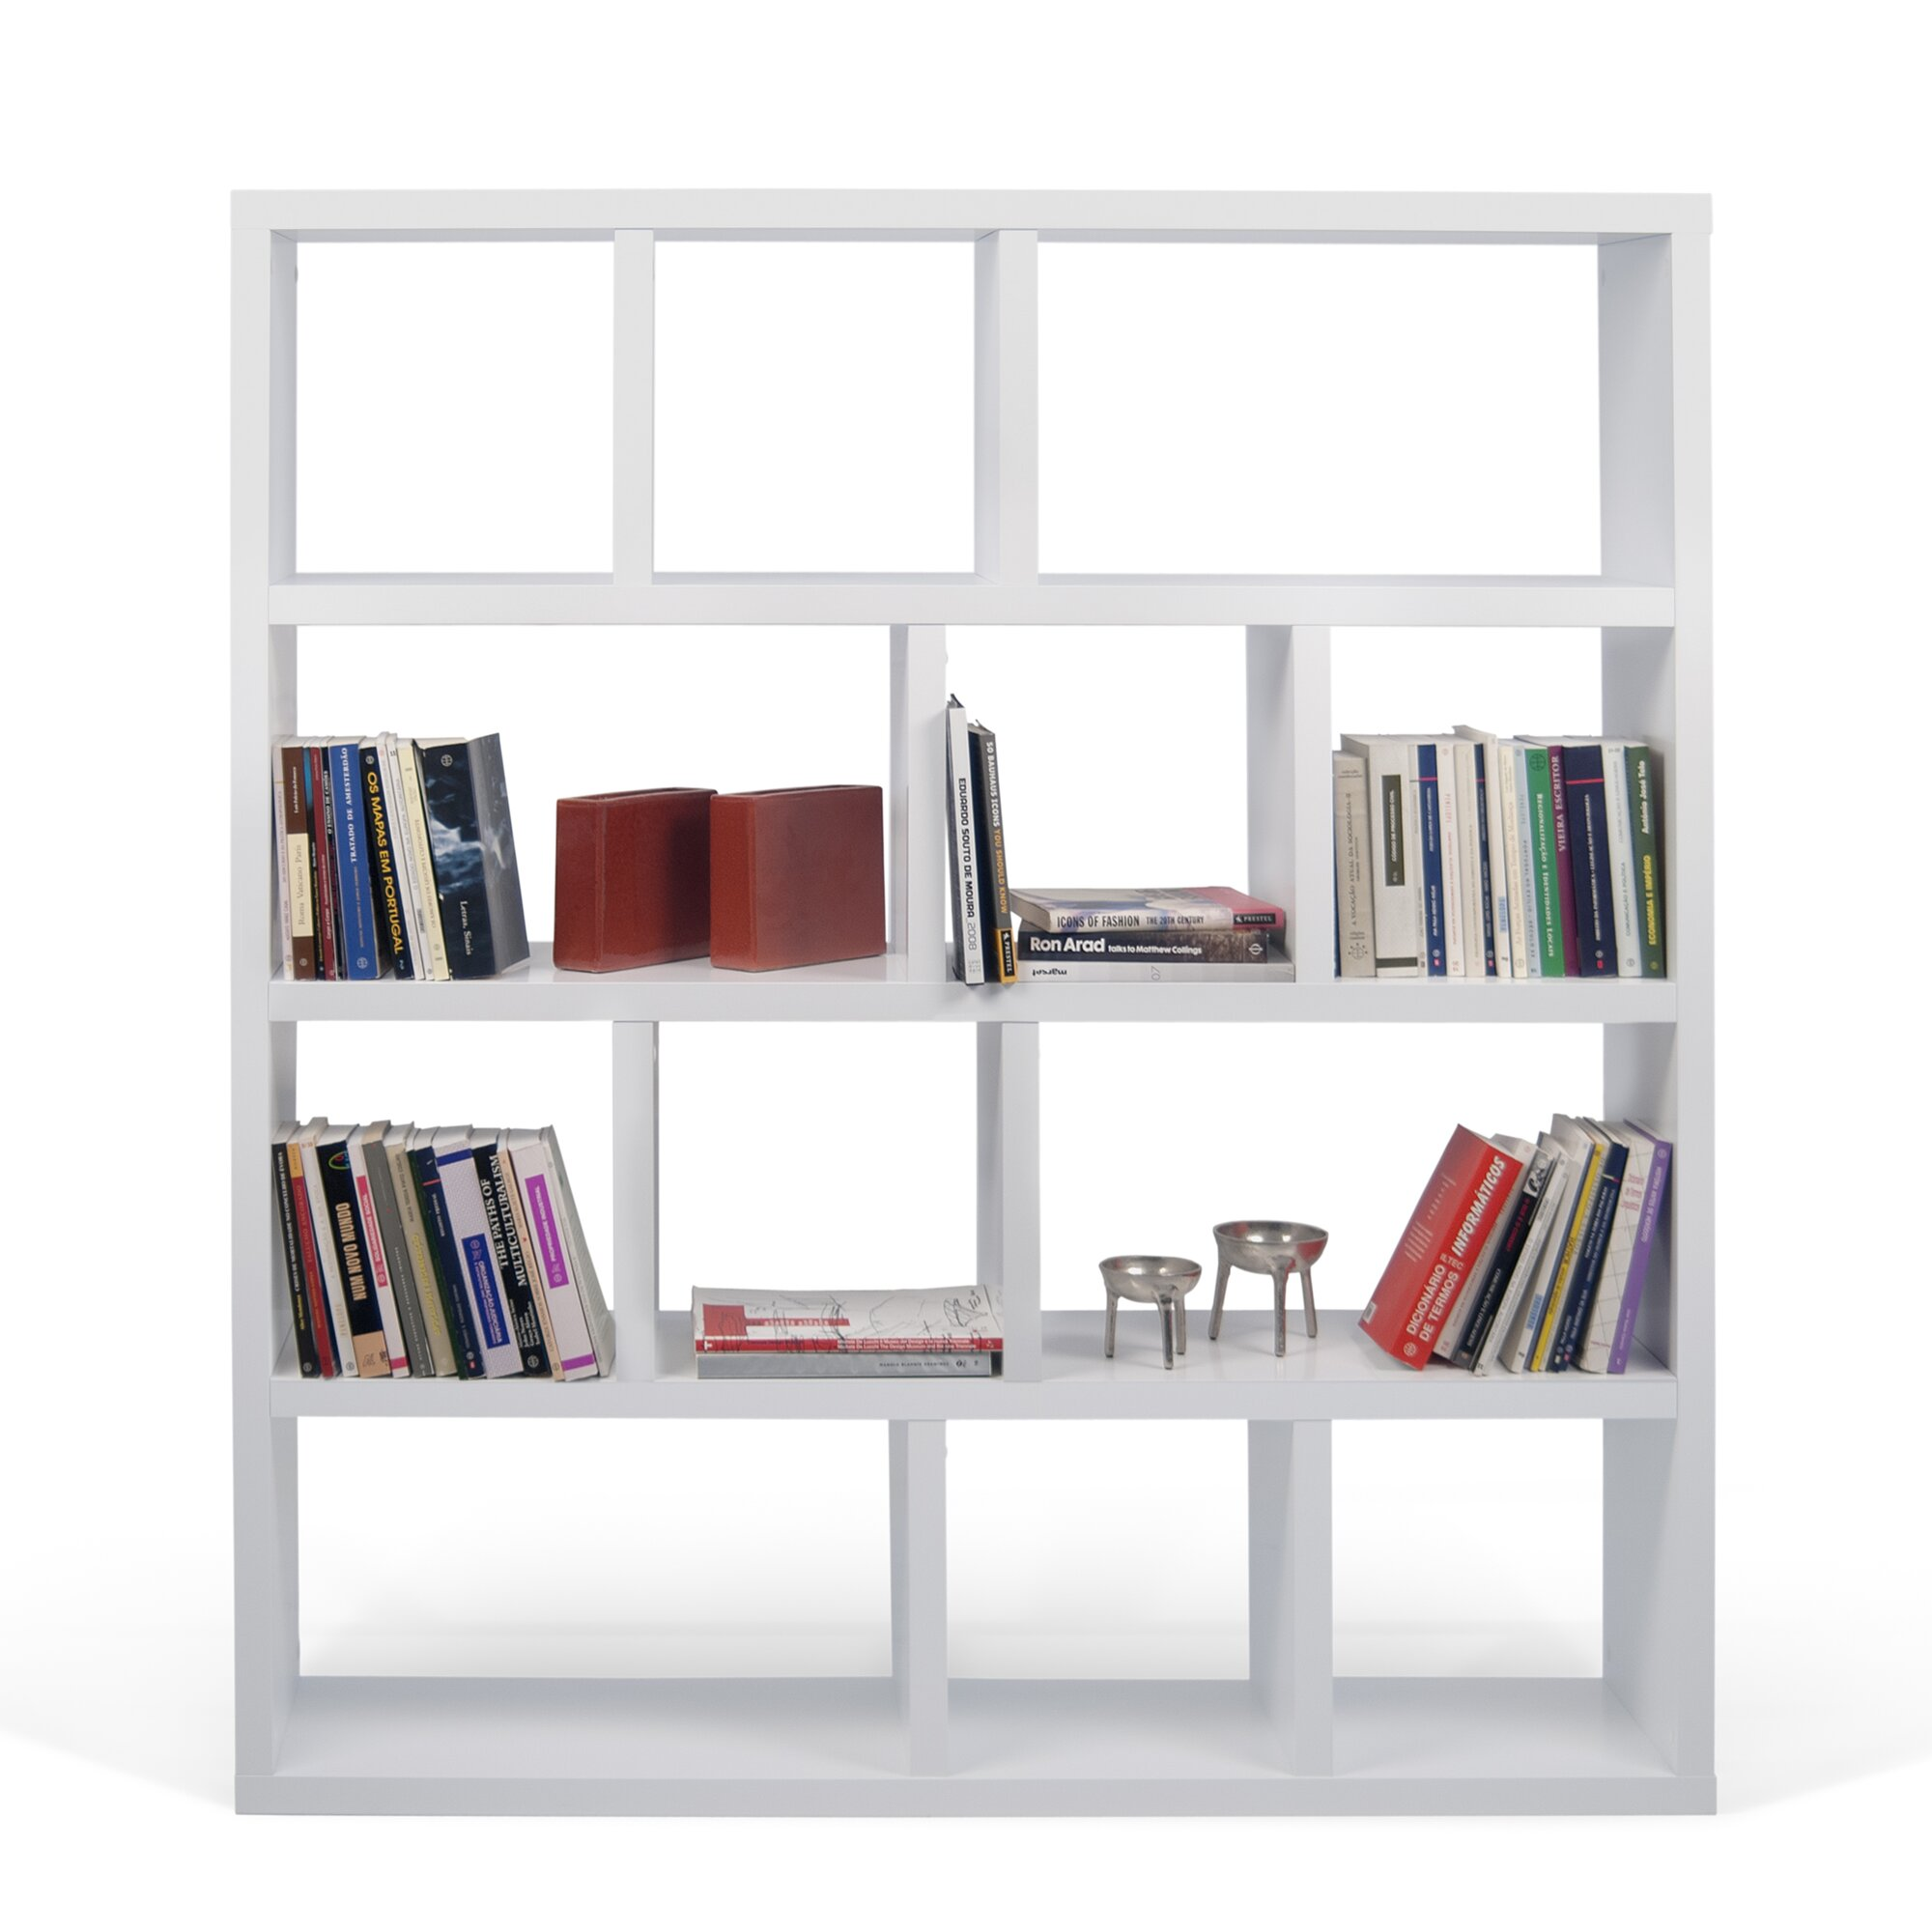 berlin 4 level 63 cube unit bookcase reviews allmodern. Black Bedroom Furniture Sets. Home Design Ideas